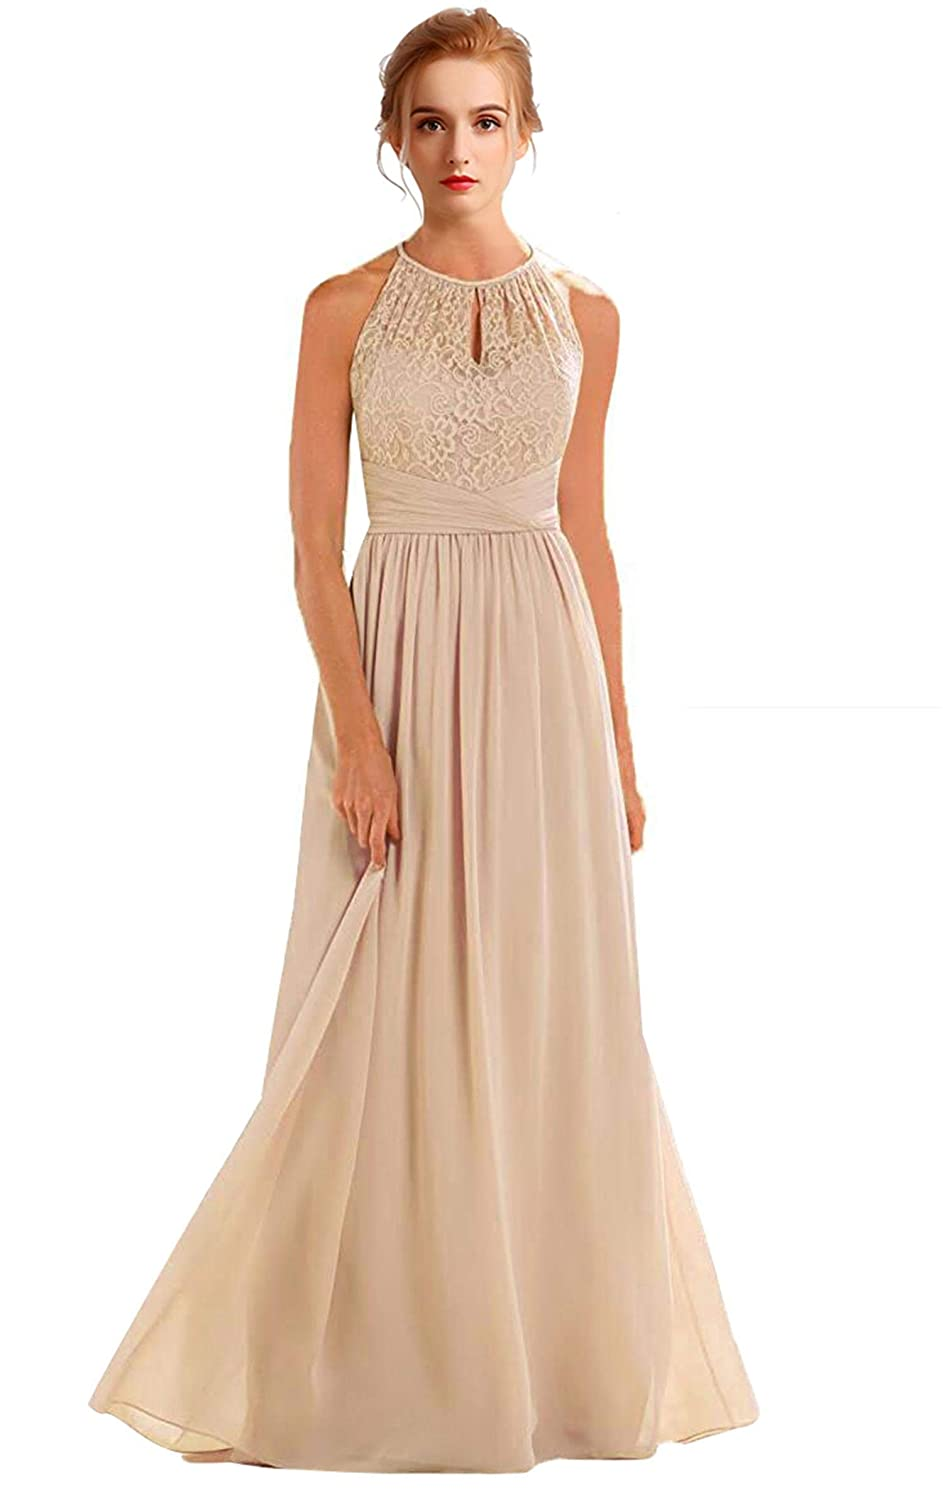 Champagne VaniaDress Women Halter Sleeveless Long Evening Dress Formal Gowns V266LF